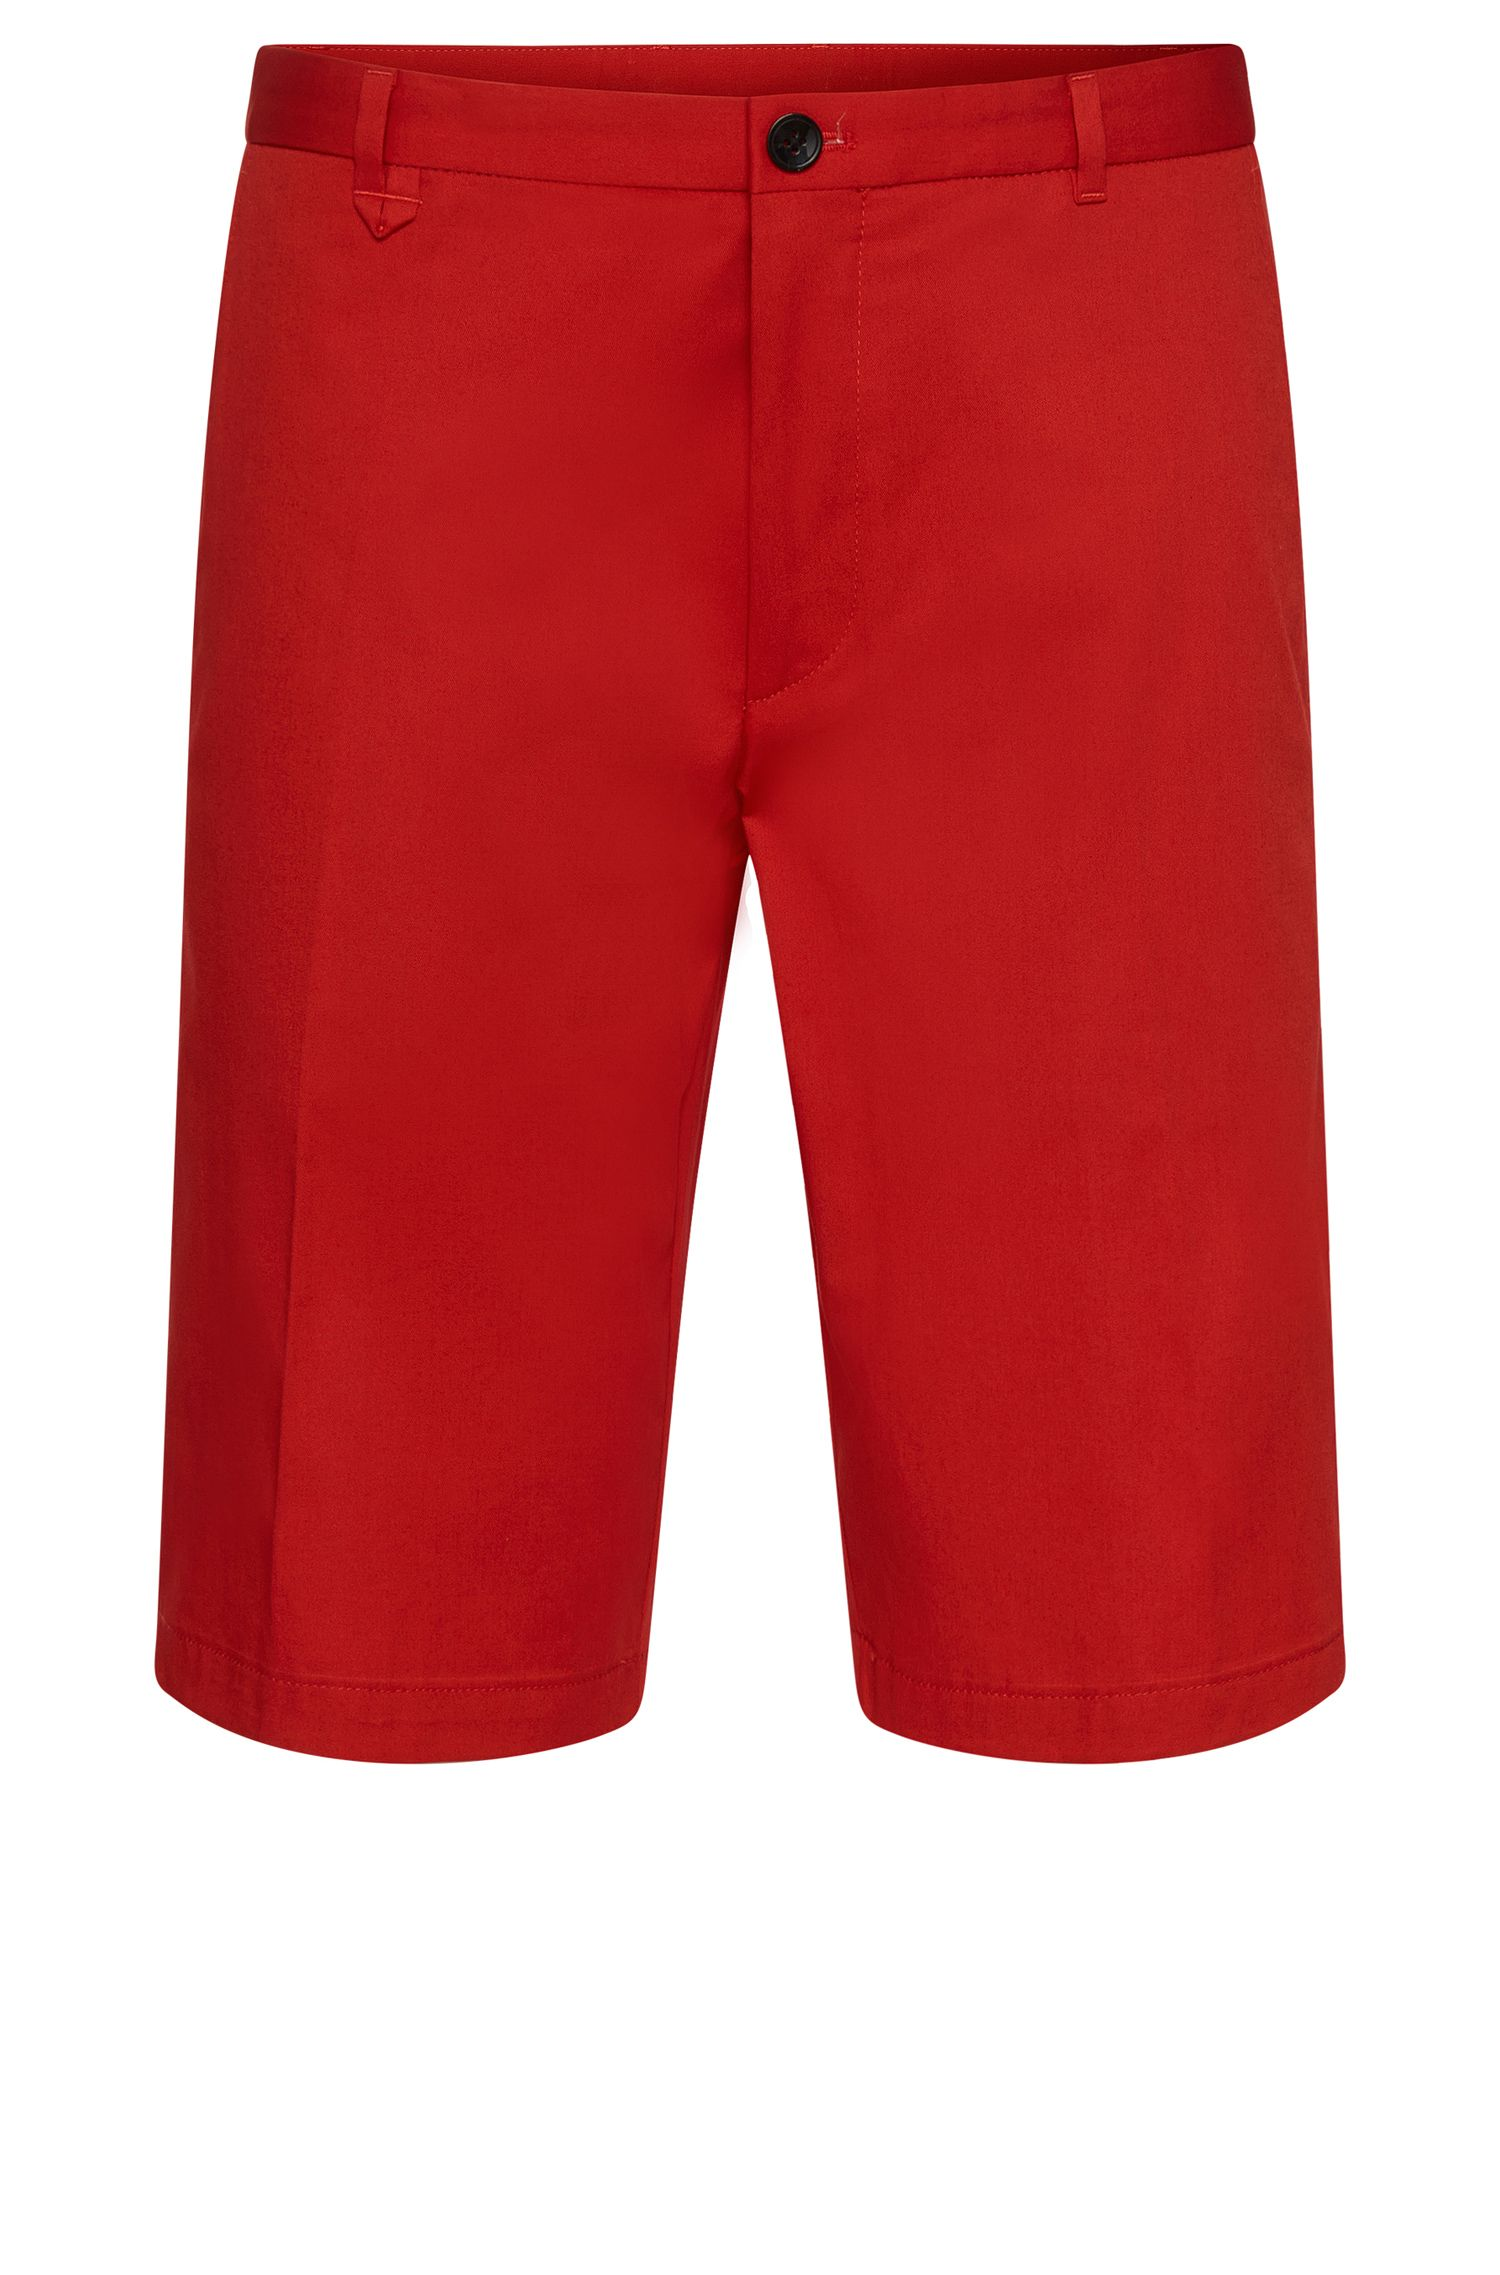 'Hano' | Slim Fit, Stretch Cotton Shorts